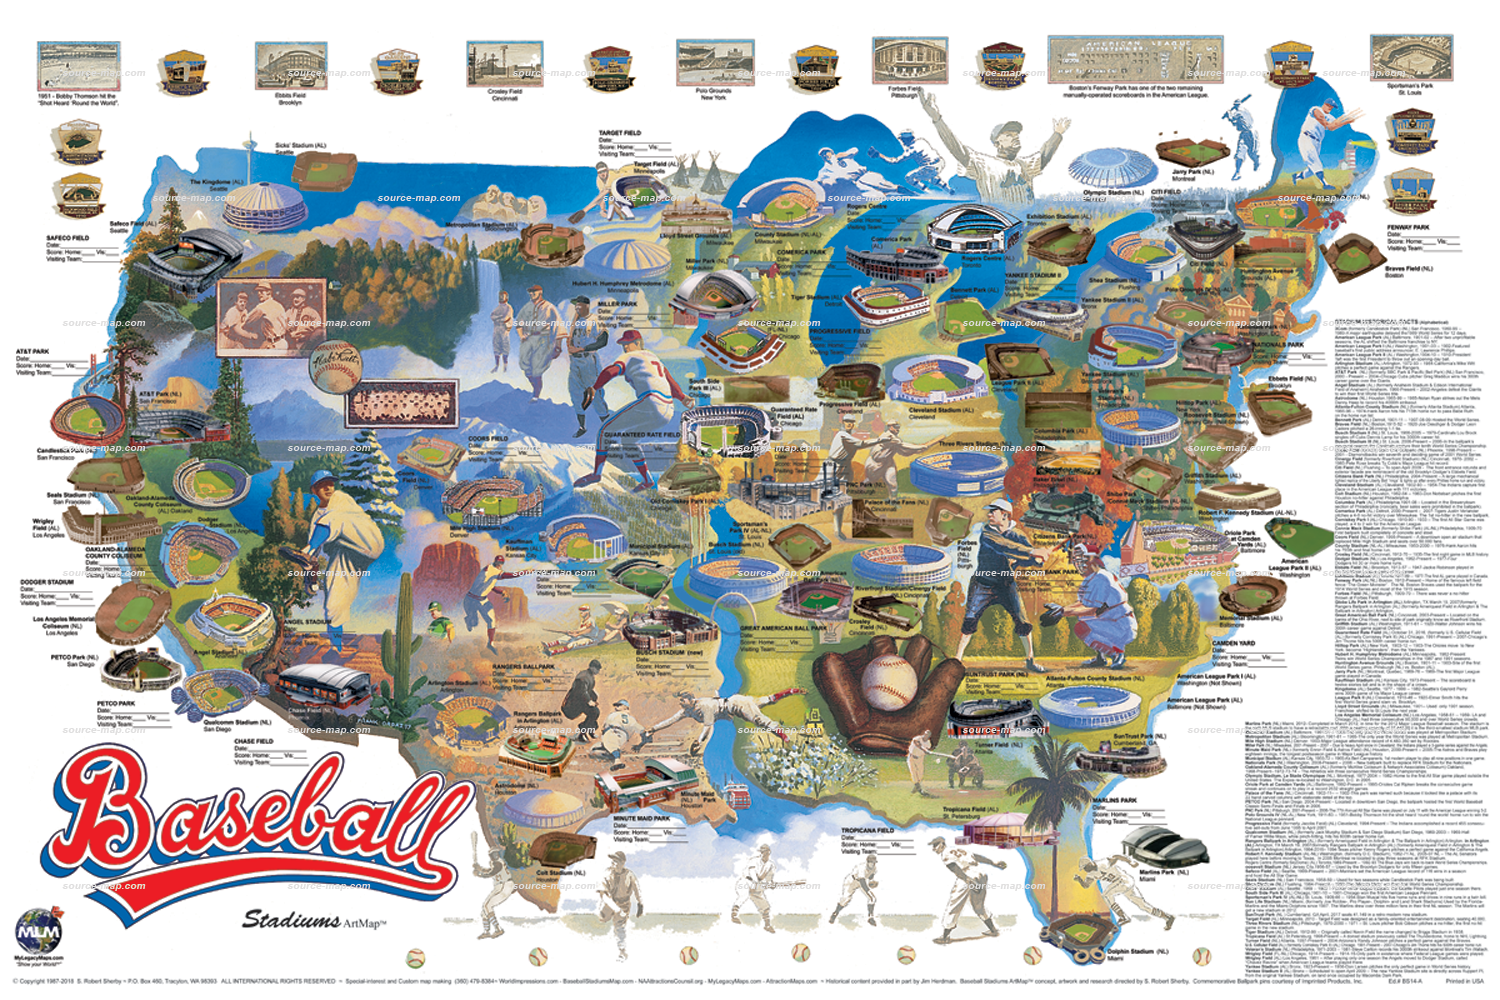 Baseball Stadiums Adventure Map